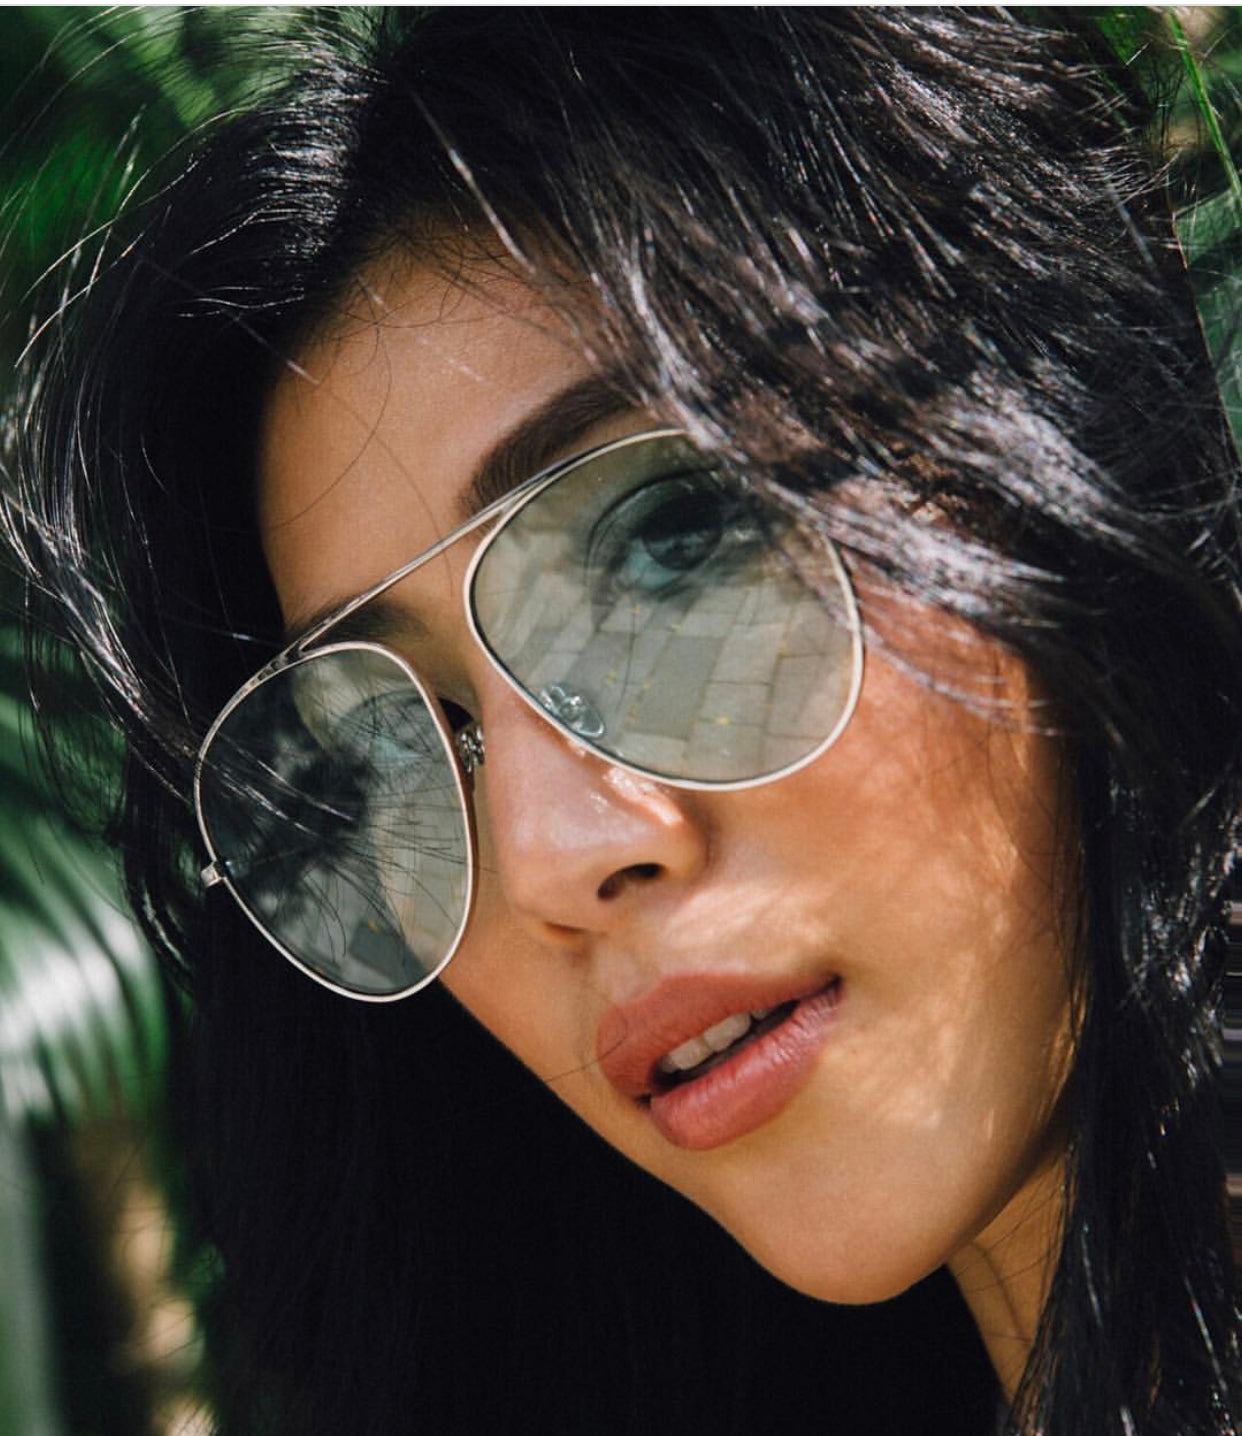 莫莉 Molly Chiang wears REVE aviator sunglasses